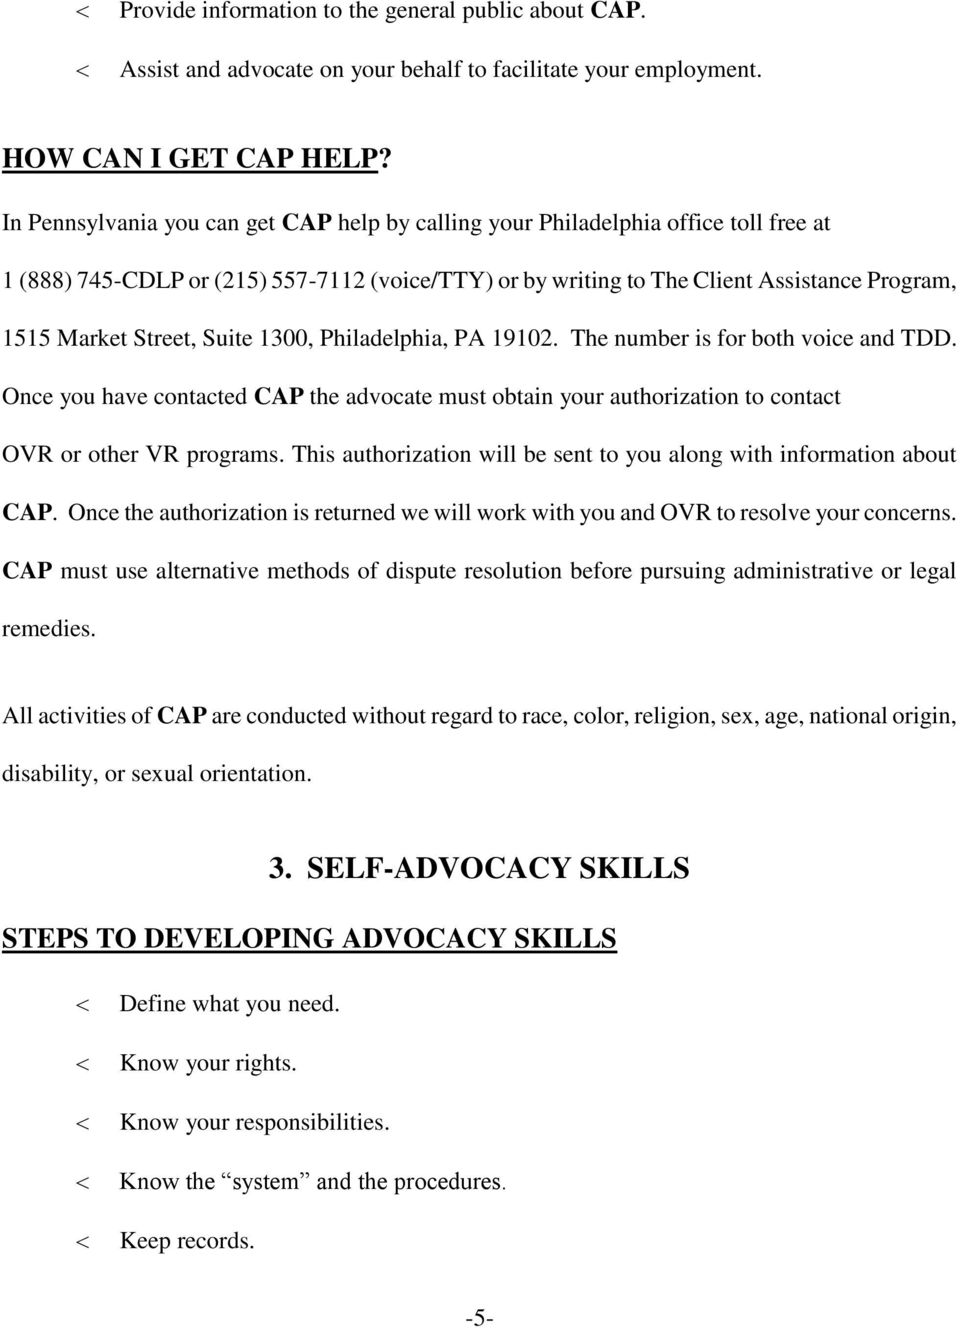 Street, Suite 1300, Philadelphia, PA 19102. The number is for both voice and TDD. Once you have contacted CAP the advocate must obtain your authorization to contact OVR or other VR programs.